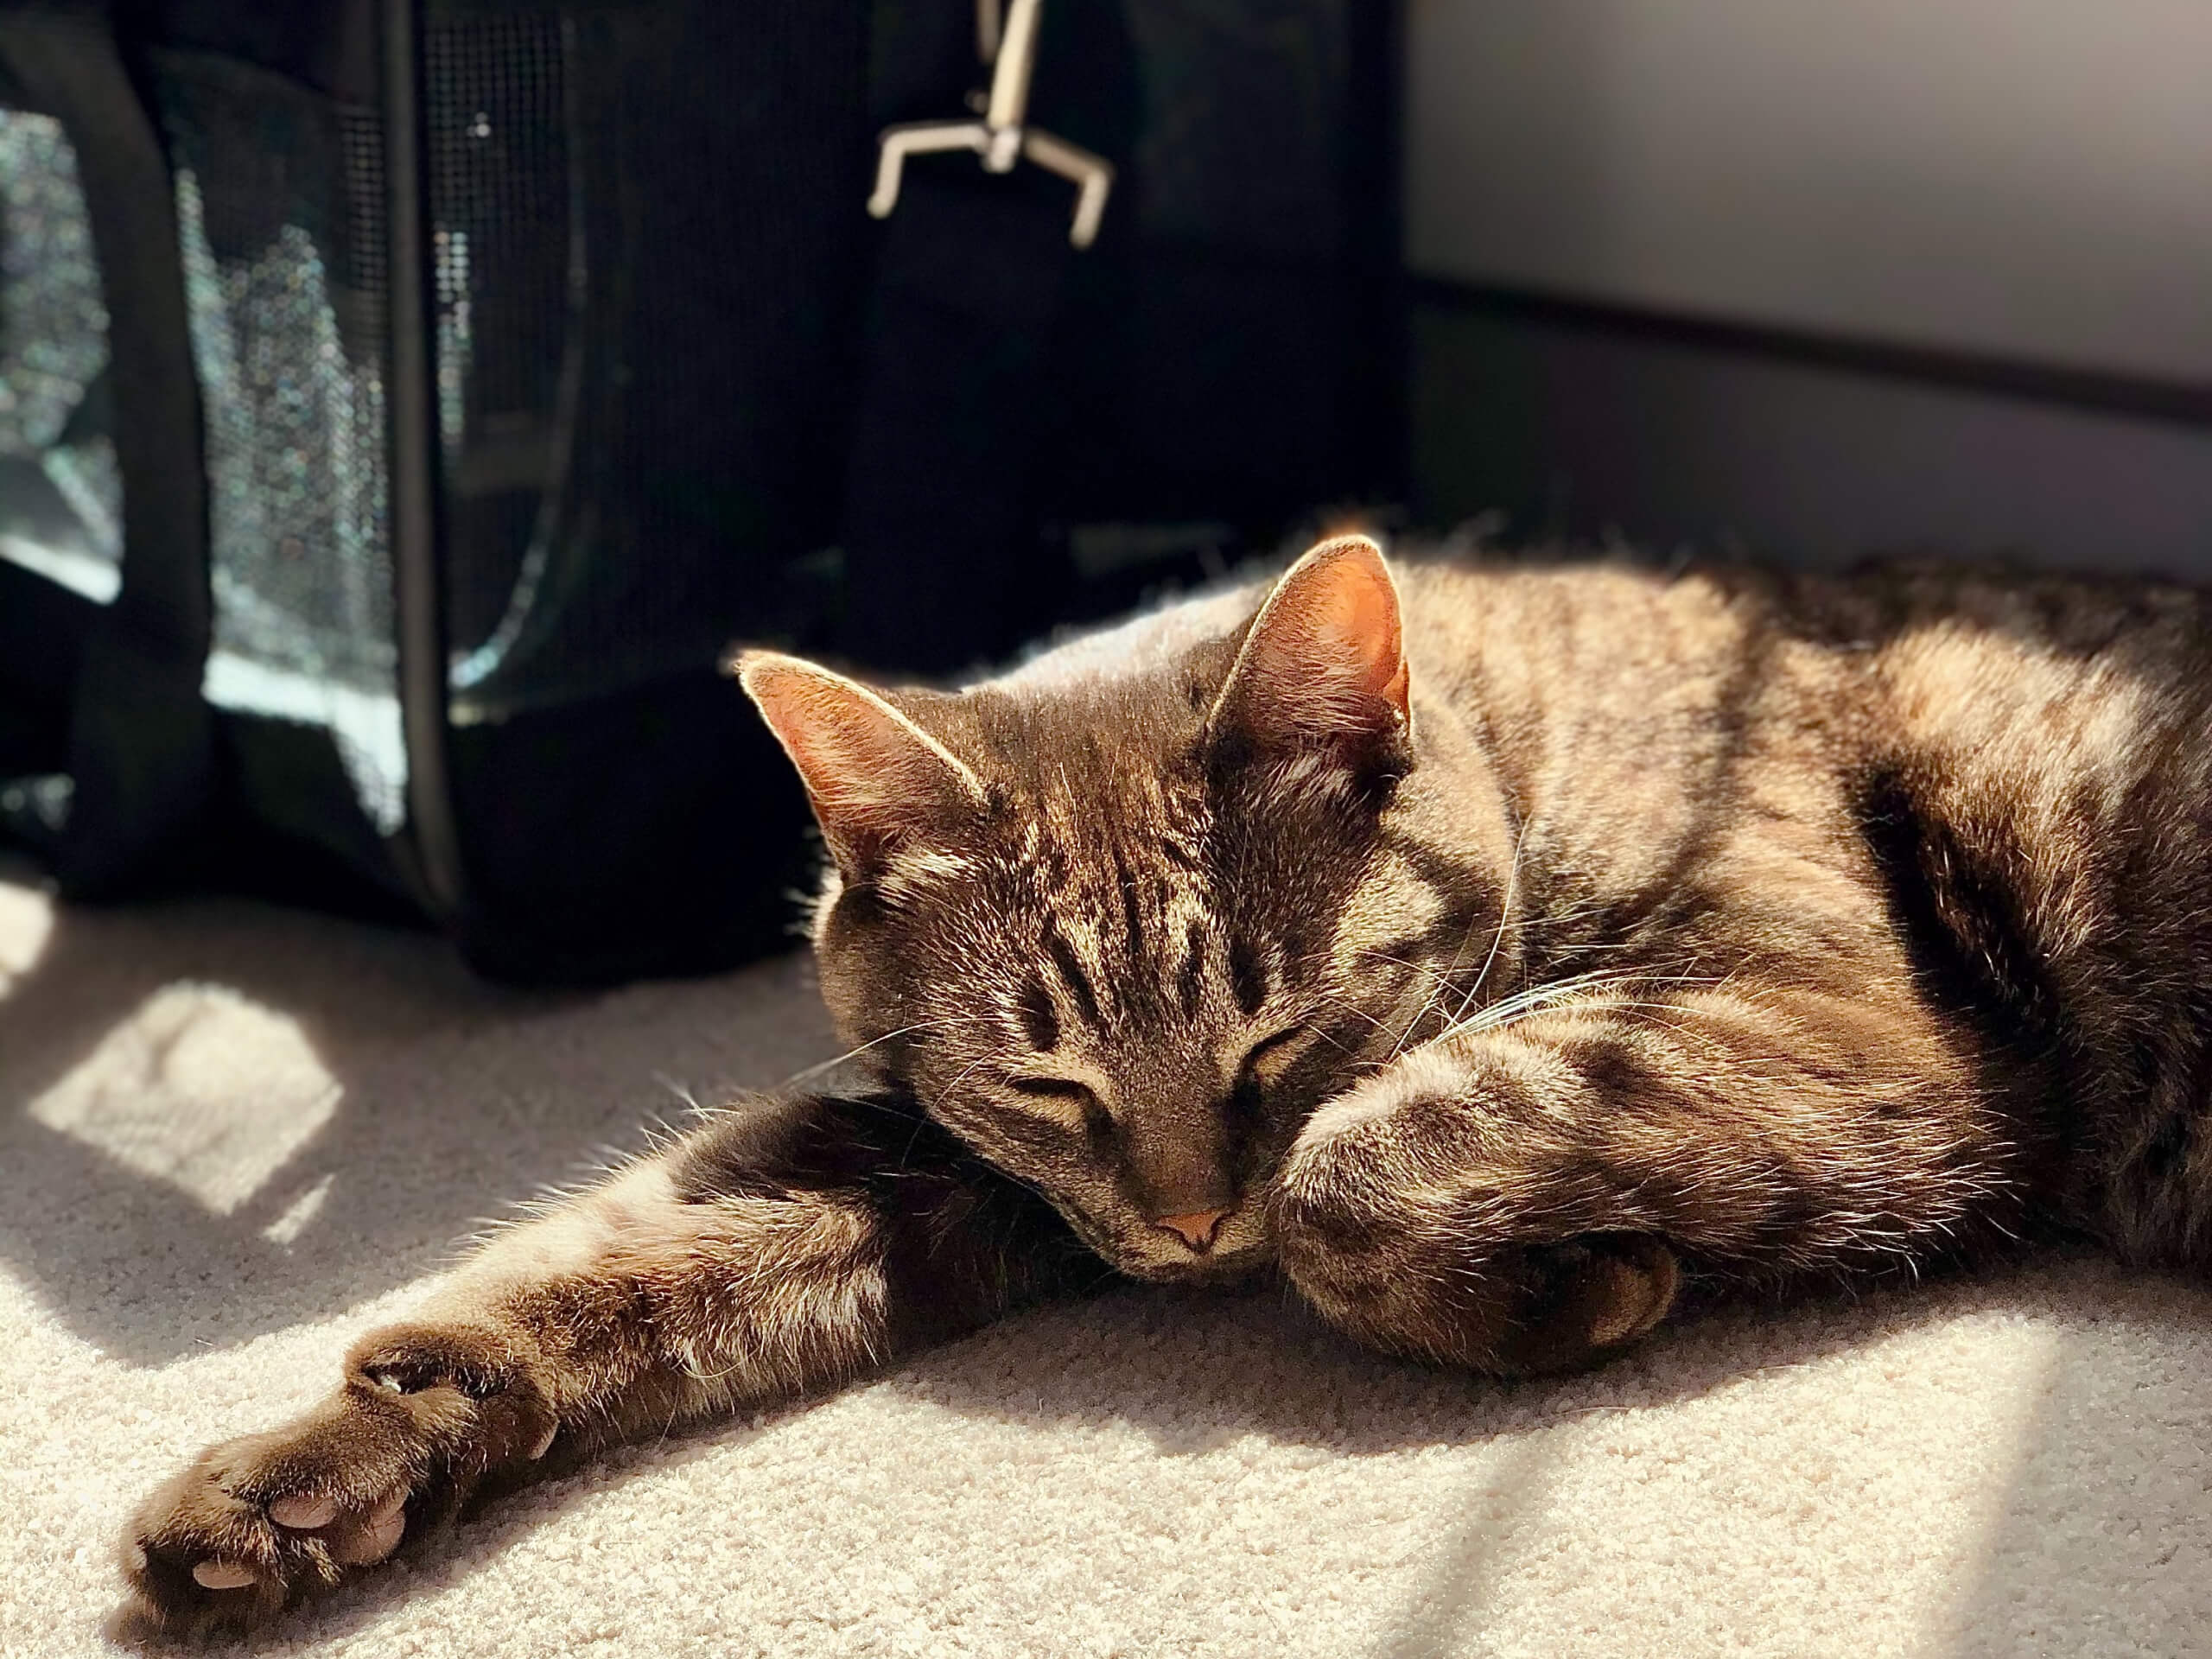 Cat relaxing in the sunshine before taking a trip in the car